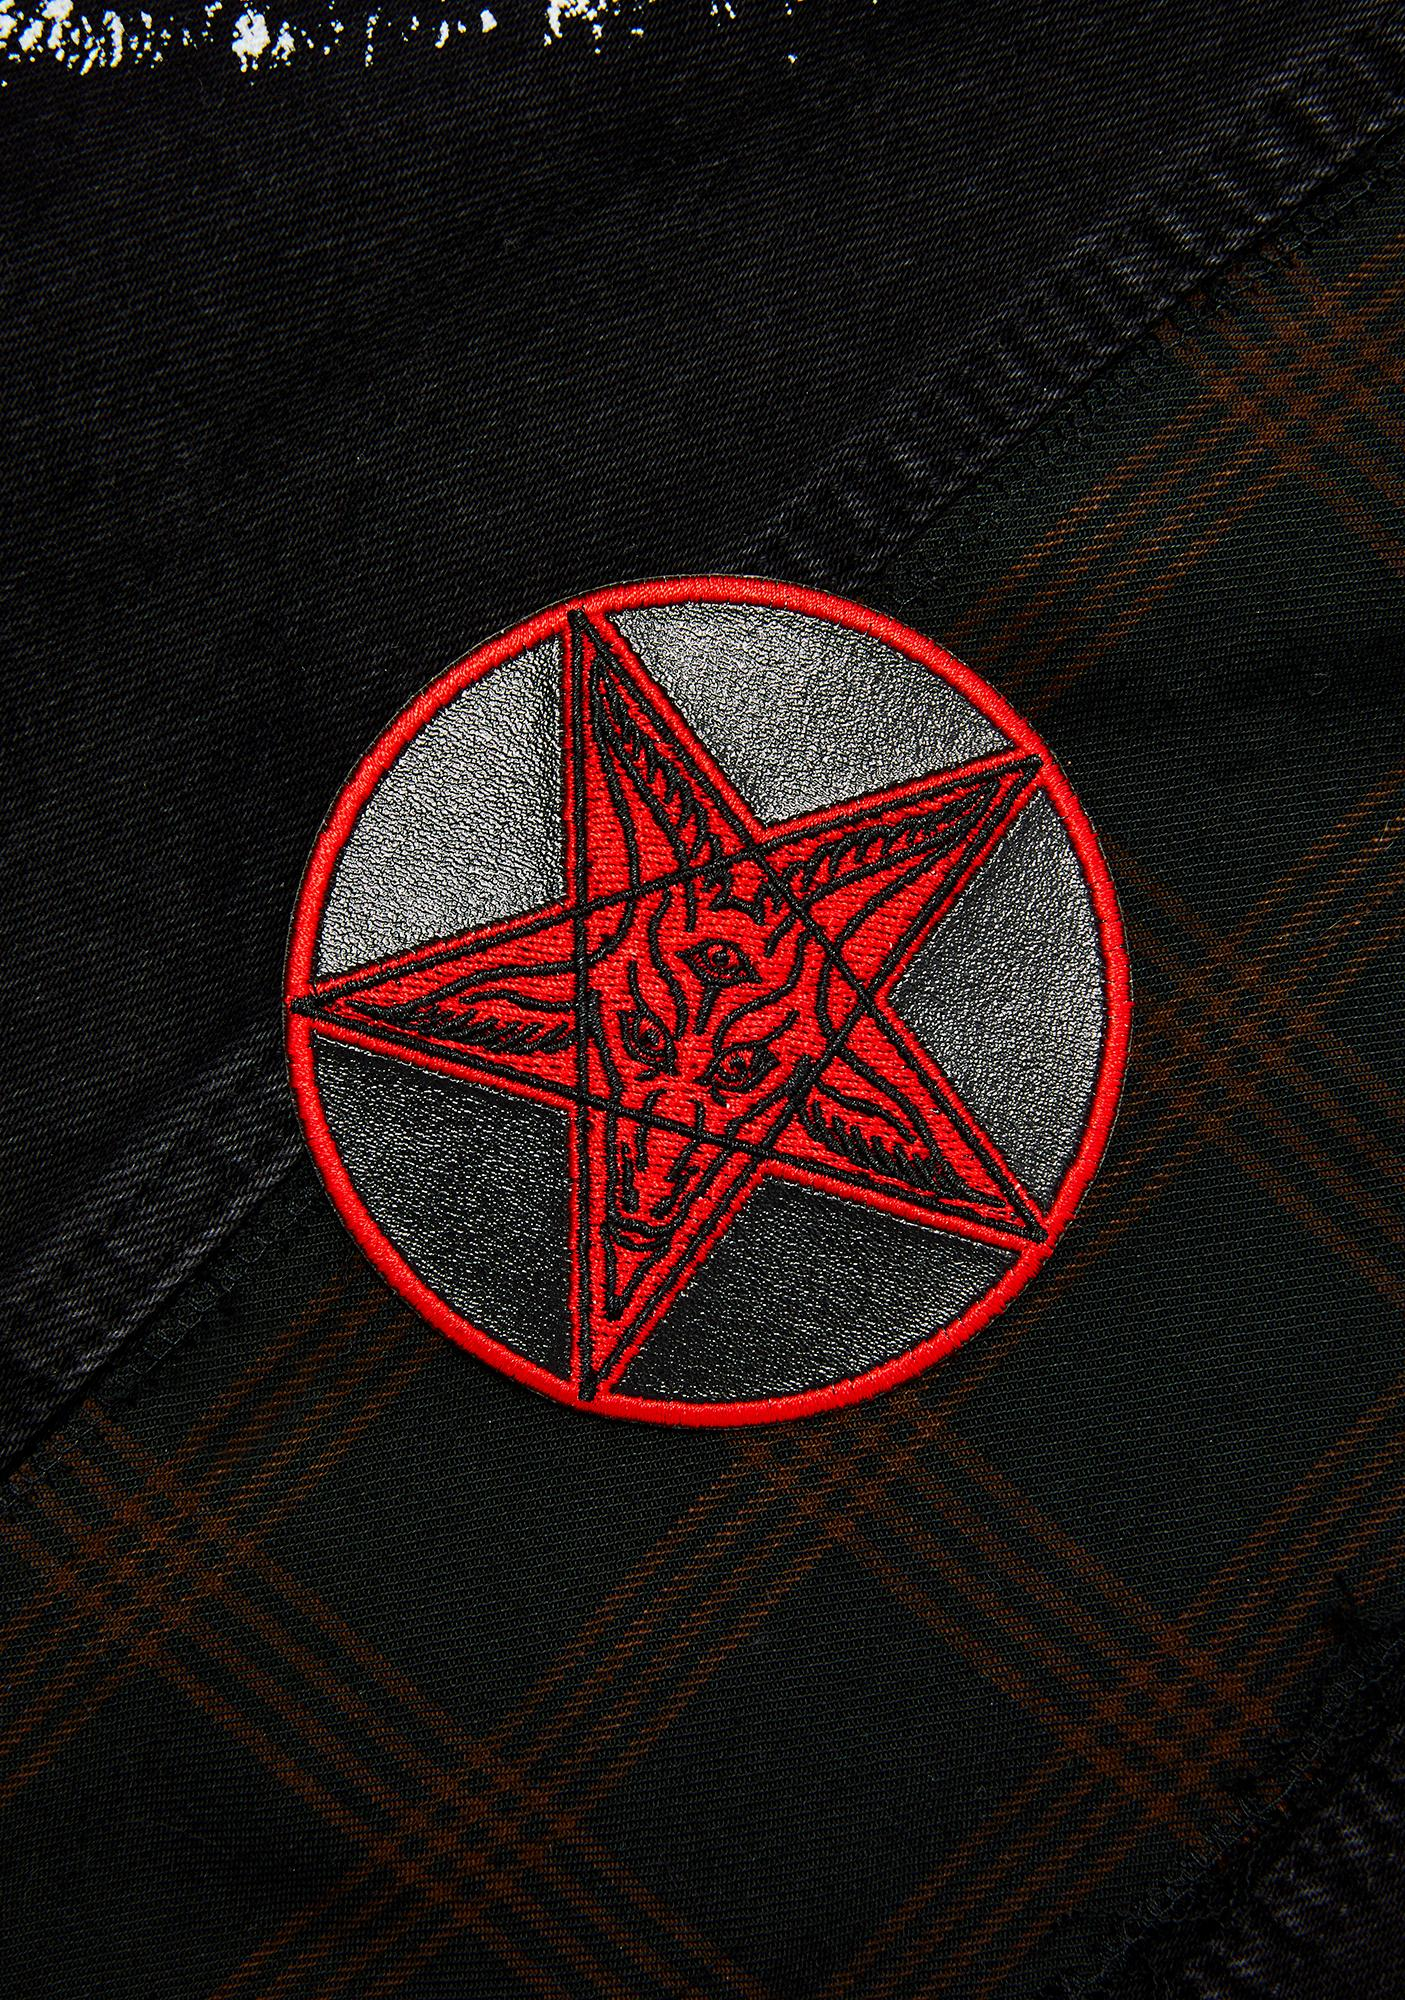 Kreepsville 666 Satanic Circle Patch